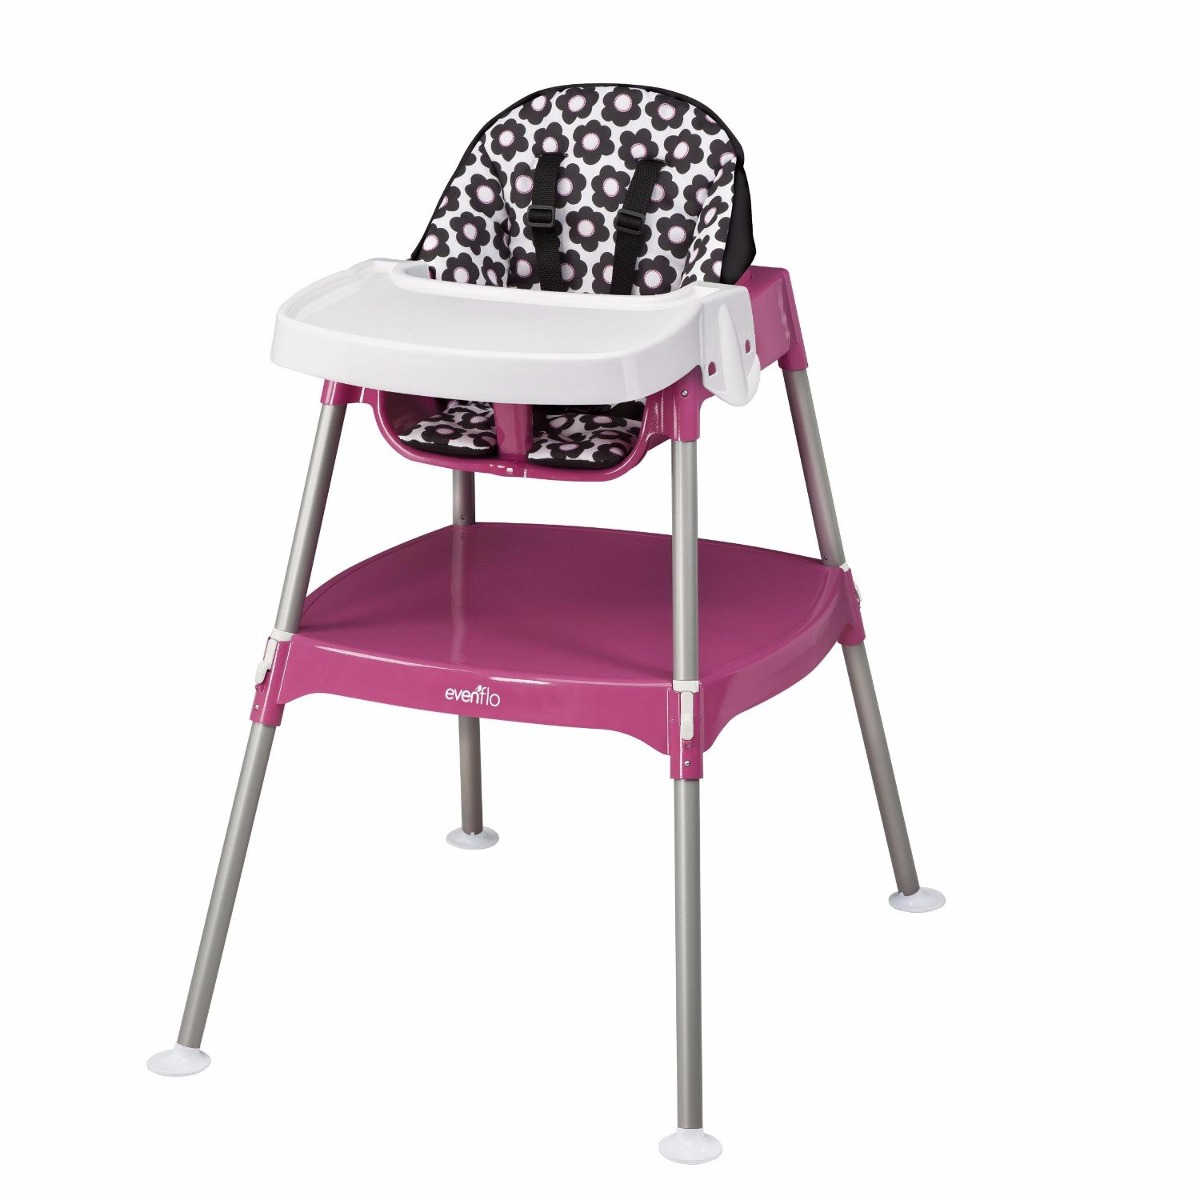 MLM 554435768 Silla Alta Sillita Mesa 3 En 1  er Periquera Bebe Evenflo  JM on evenflo 2 in 1 high chair